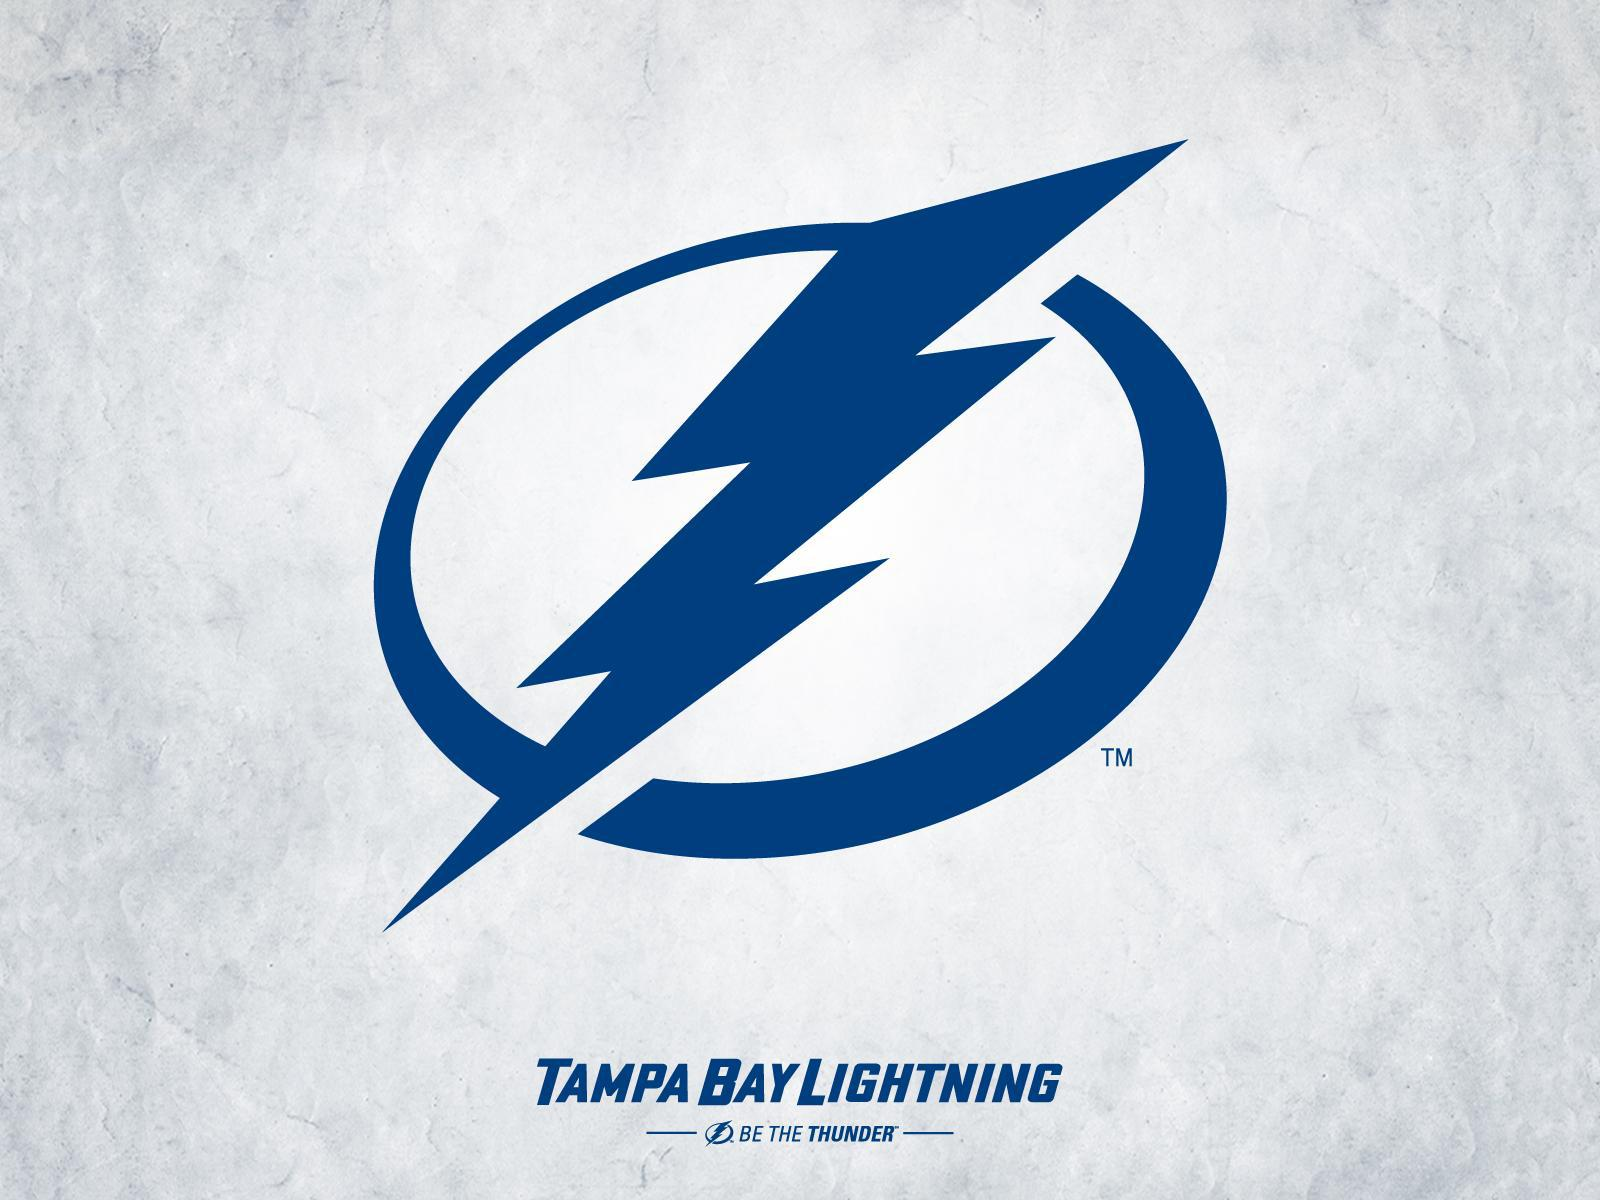 Tampa Bay Lightning Wallpaper Top HDQ Tampa Bay 1600x1200